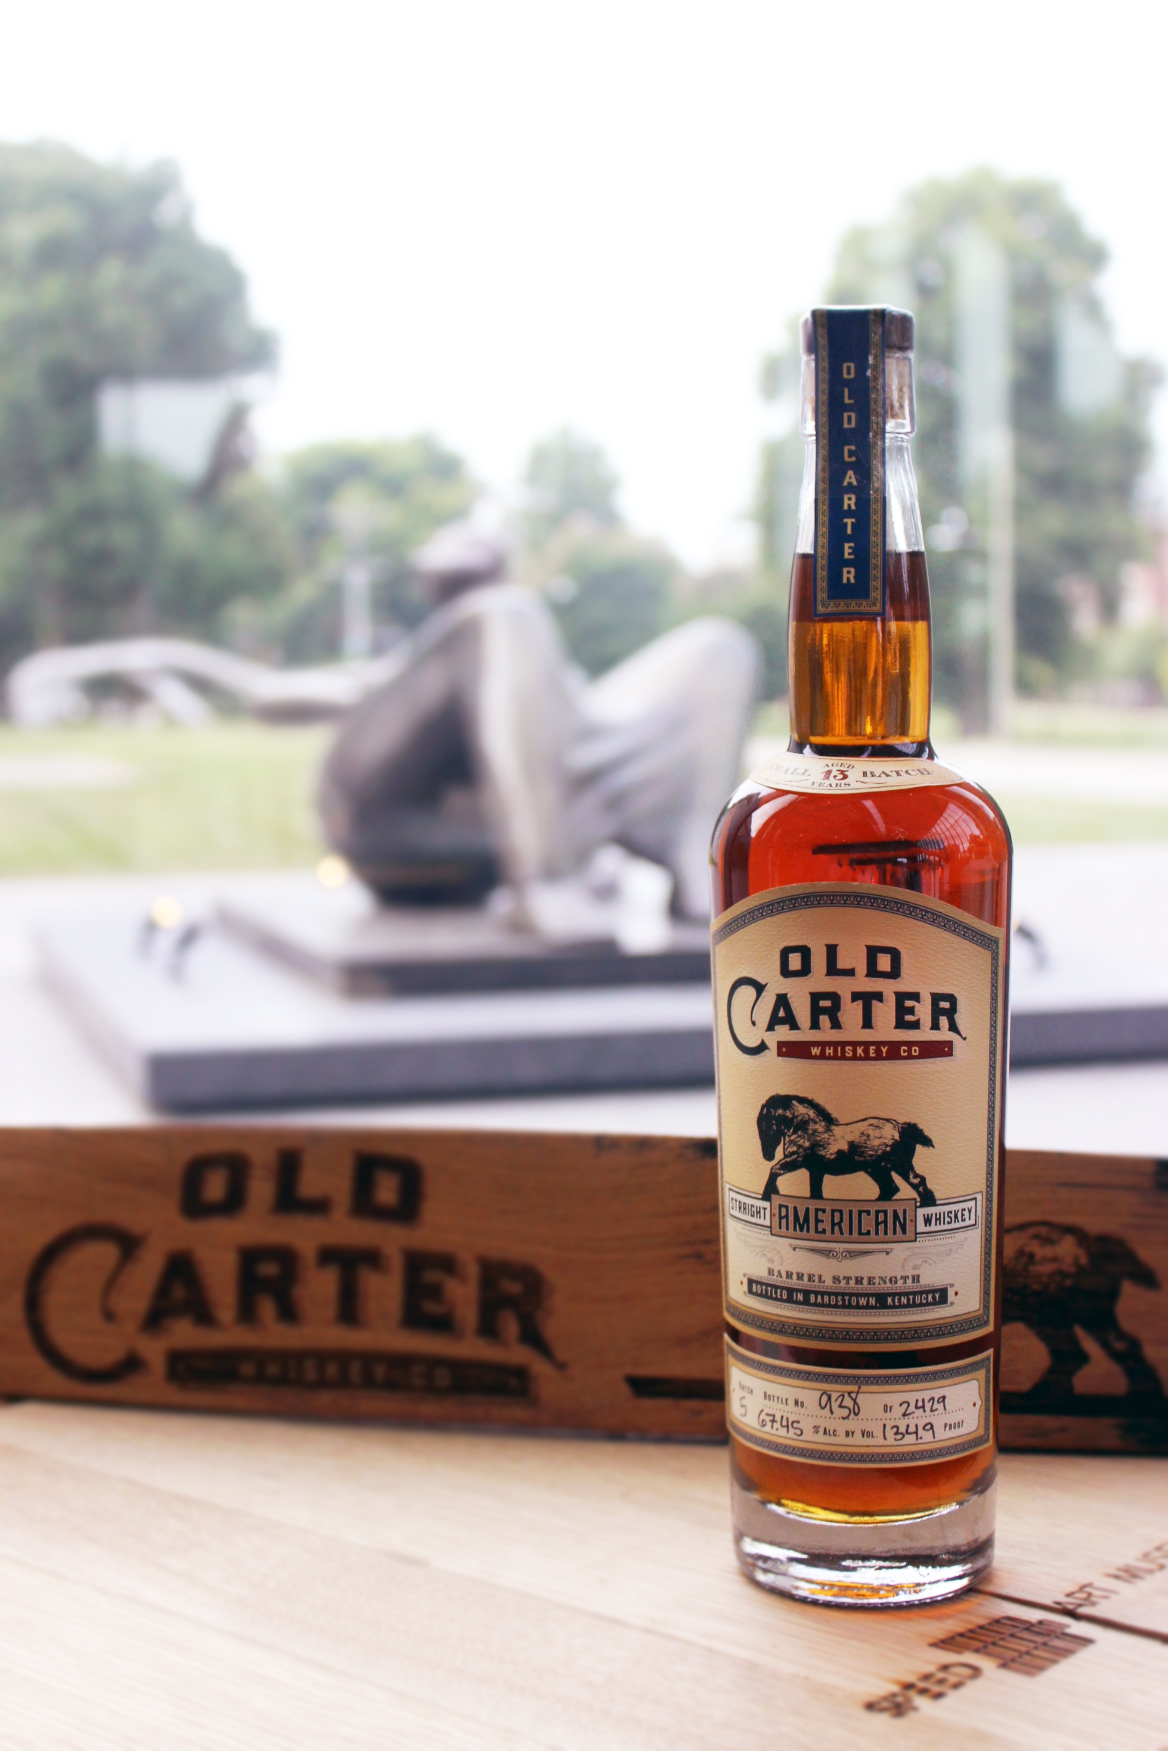 Old Carter Whiskey Co. Straight American Whiskey Small Batch #5 & Laser Engraved Whiskey Barrel Stave